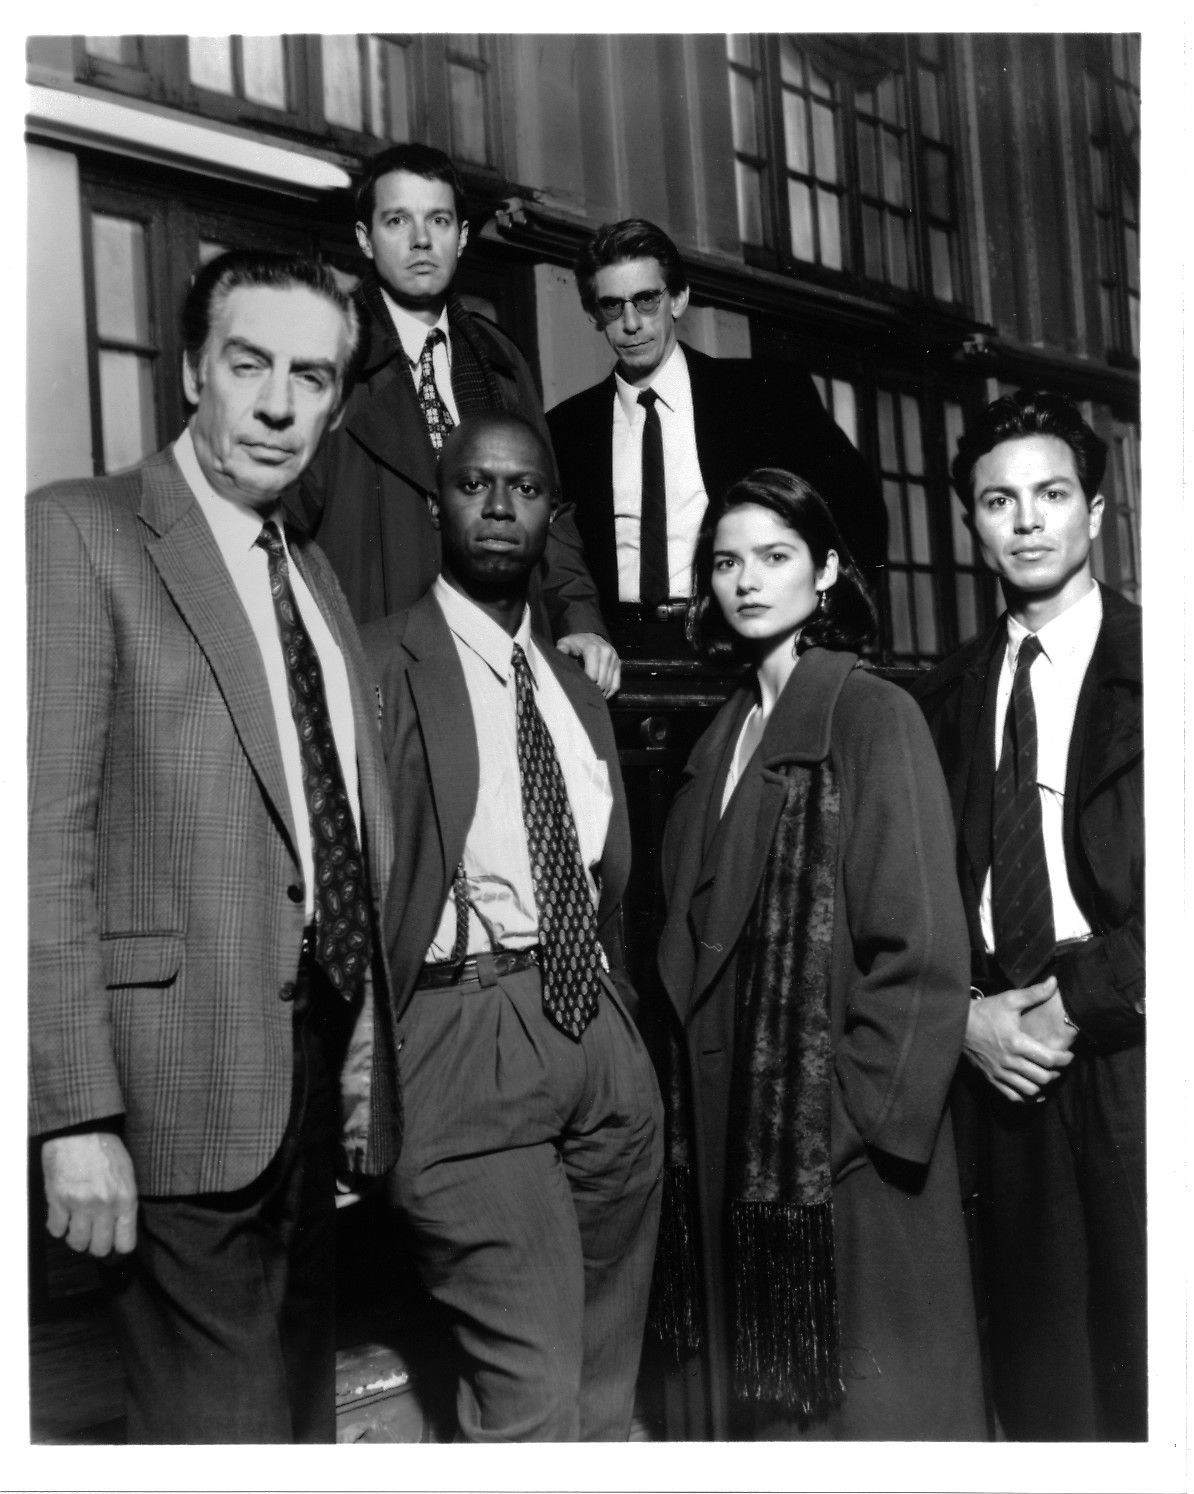 Benjamin Bratt, Jerry Orbach, Jill Hennessy | a cross over with Homicide: Life on the Streets